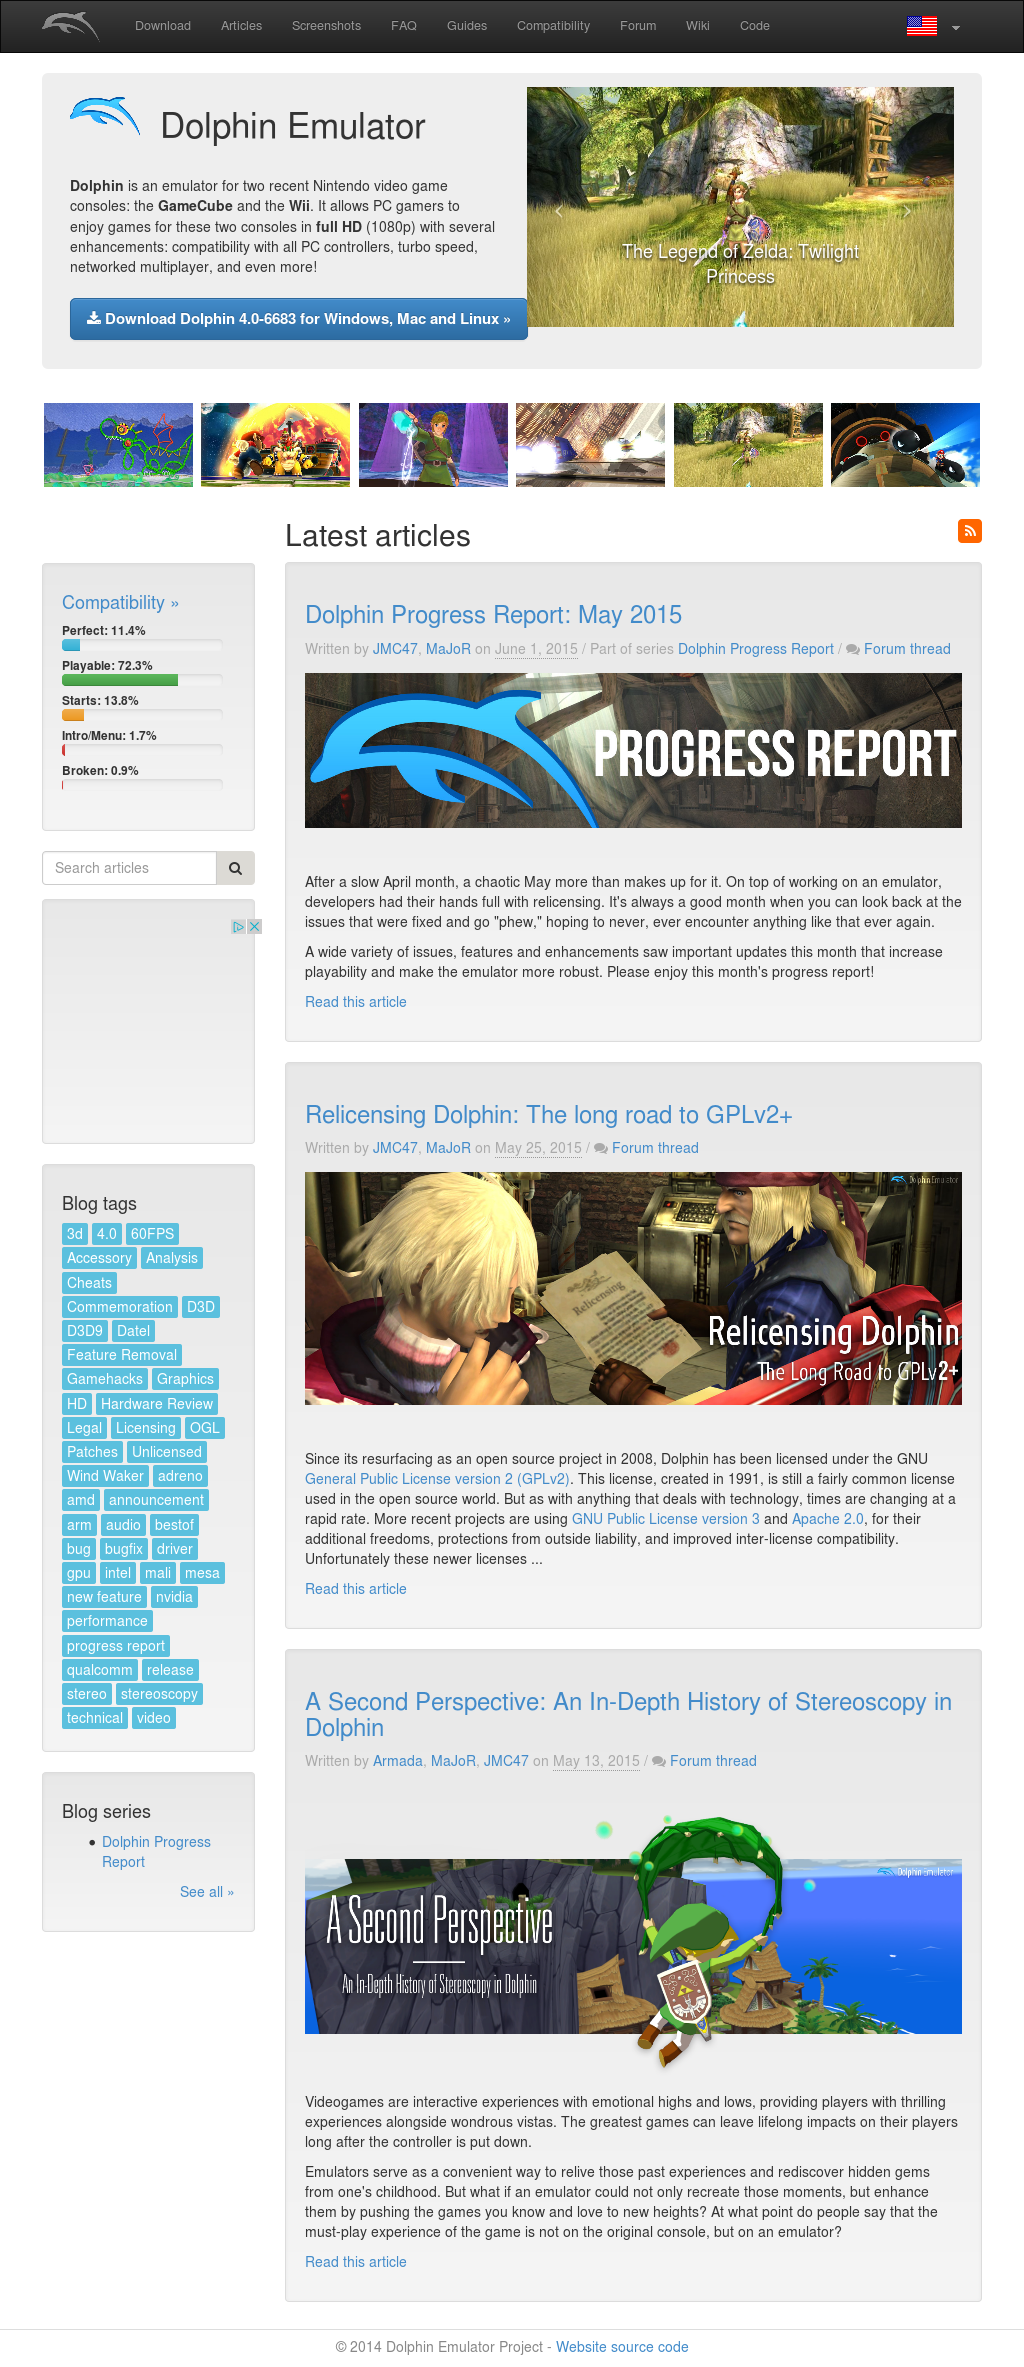 Dolphin Emulator Project Competitors, Revenue and Employees